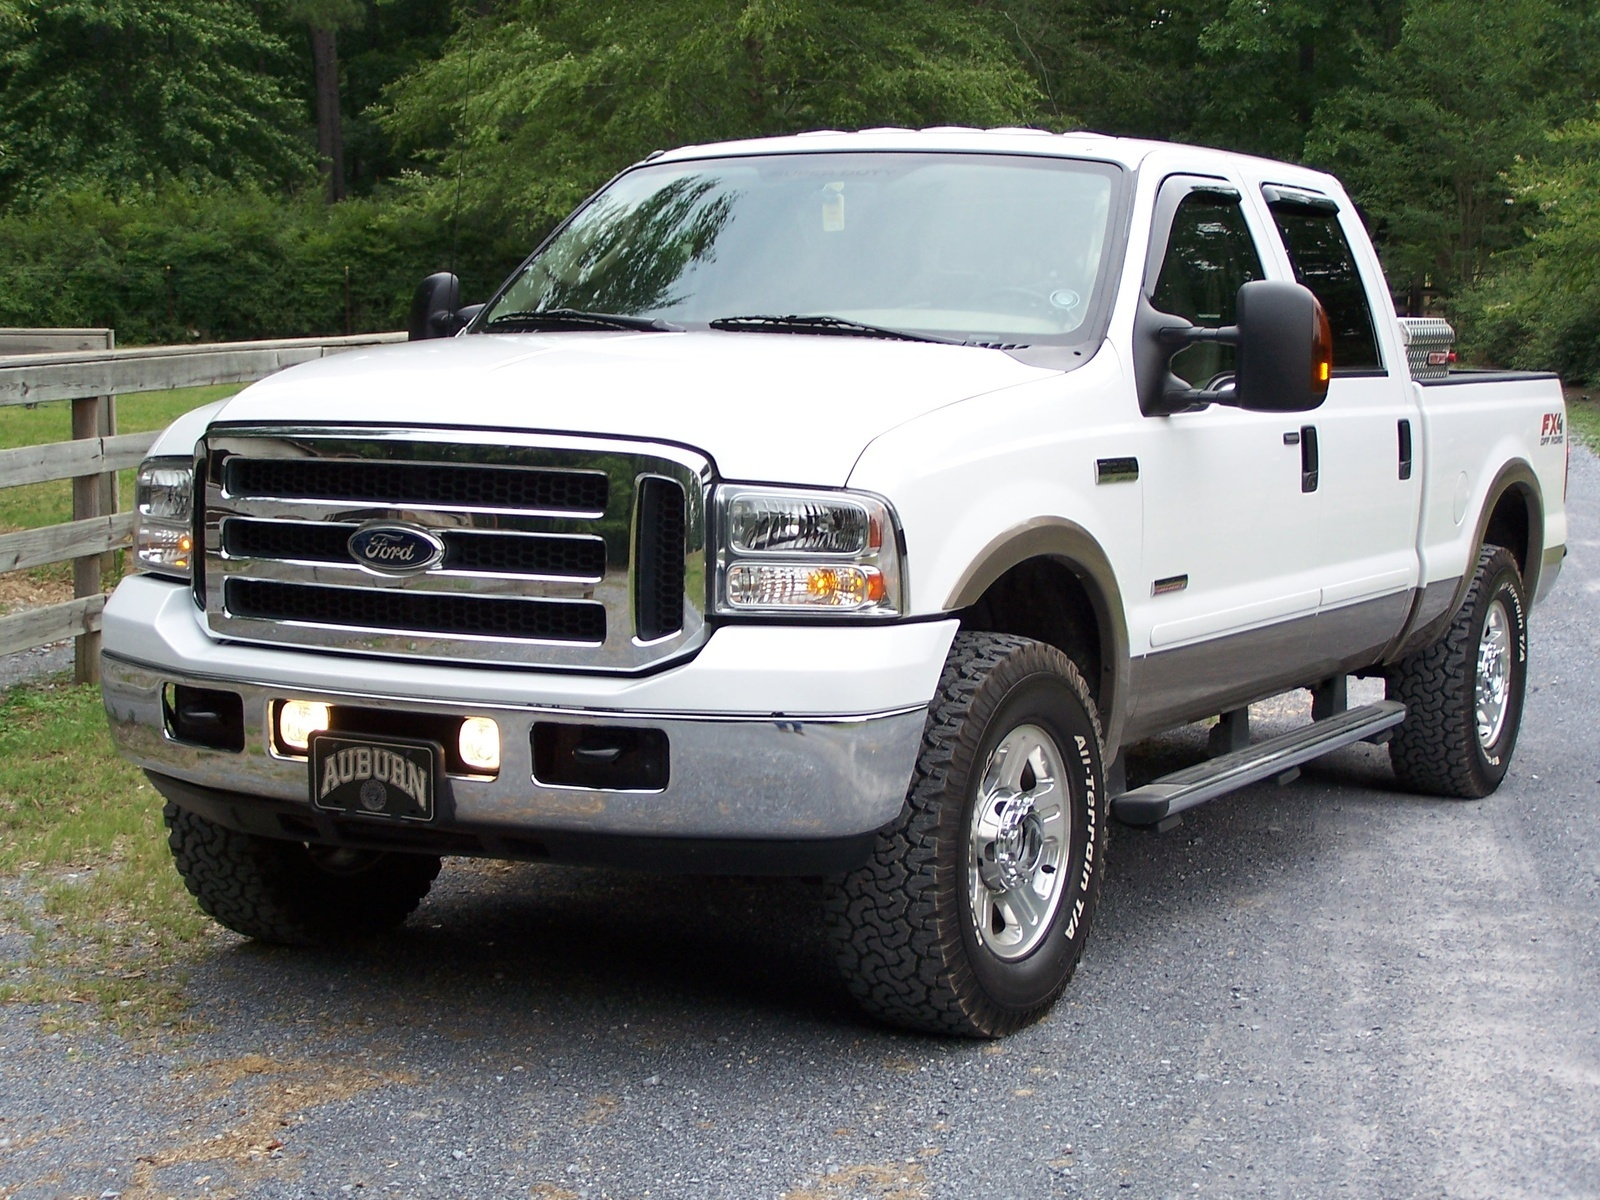 2006 Ford F-250 Super Duty - Overview - CarGurus